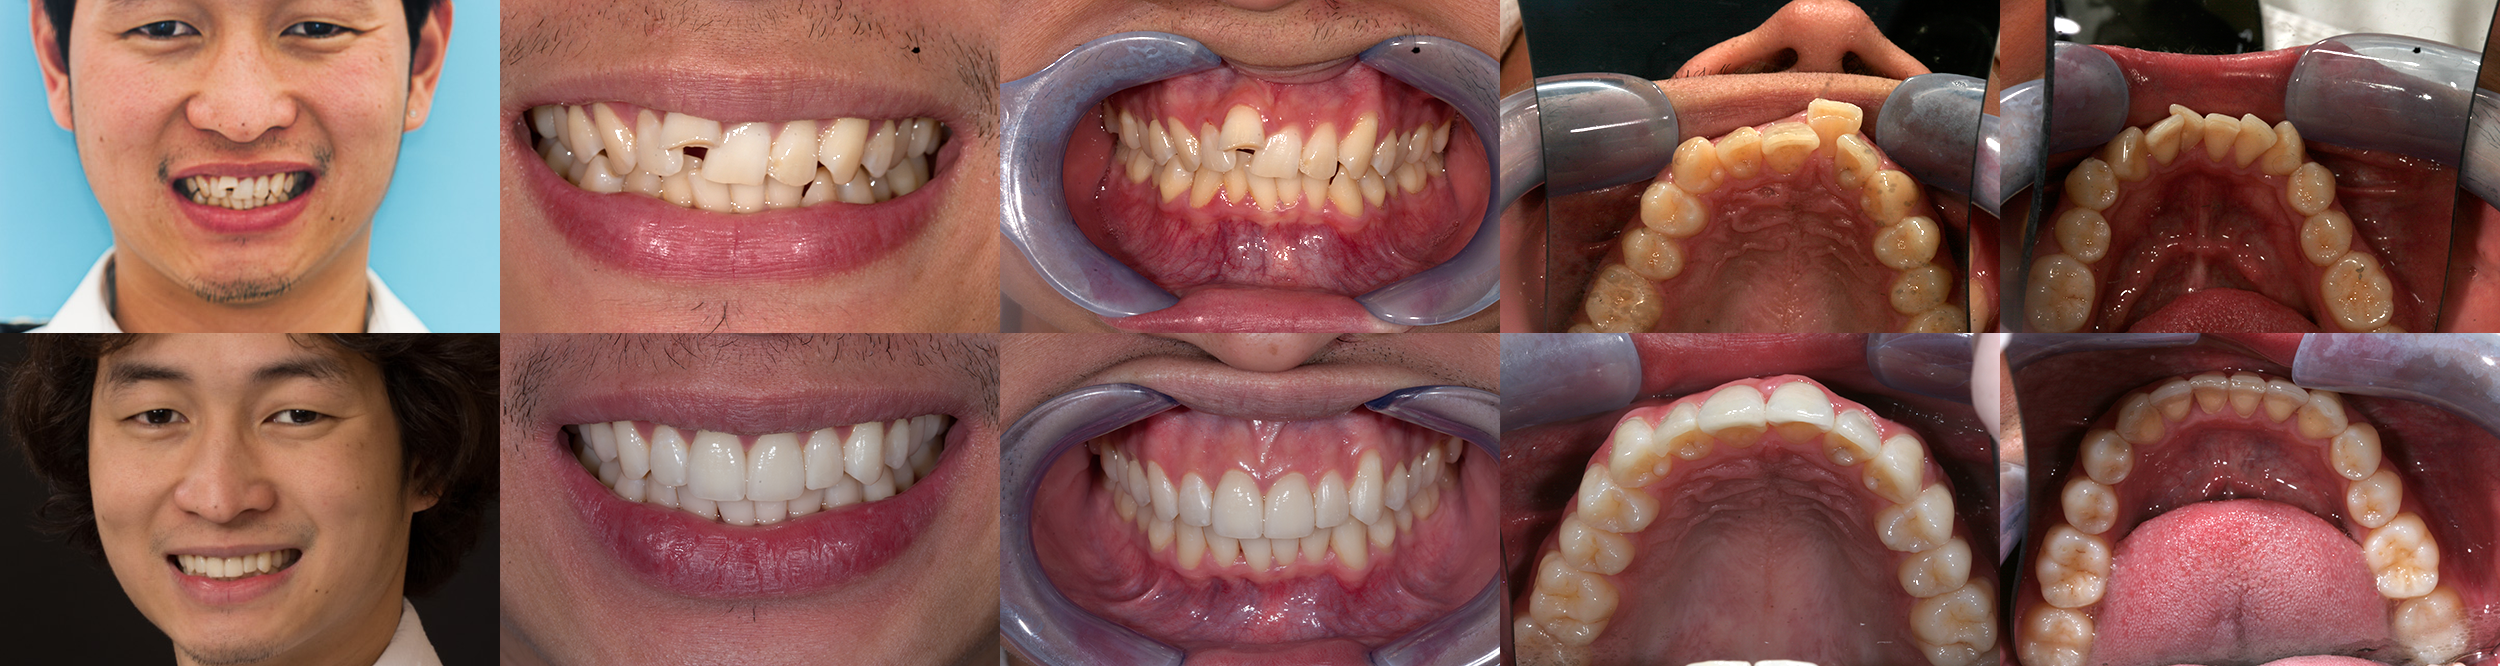 Spring retainer before and after